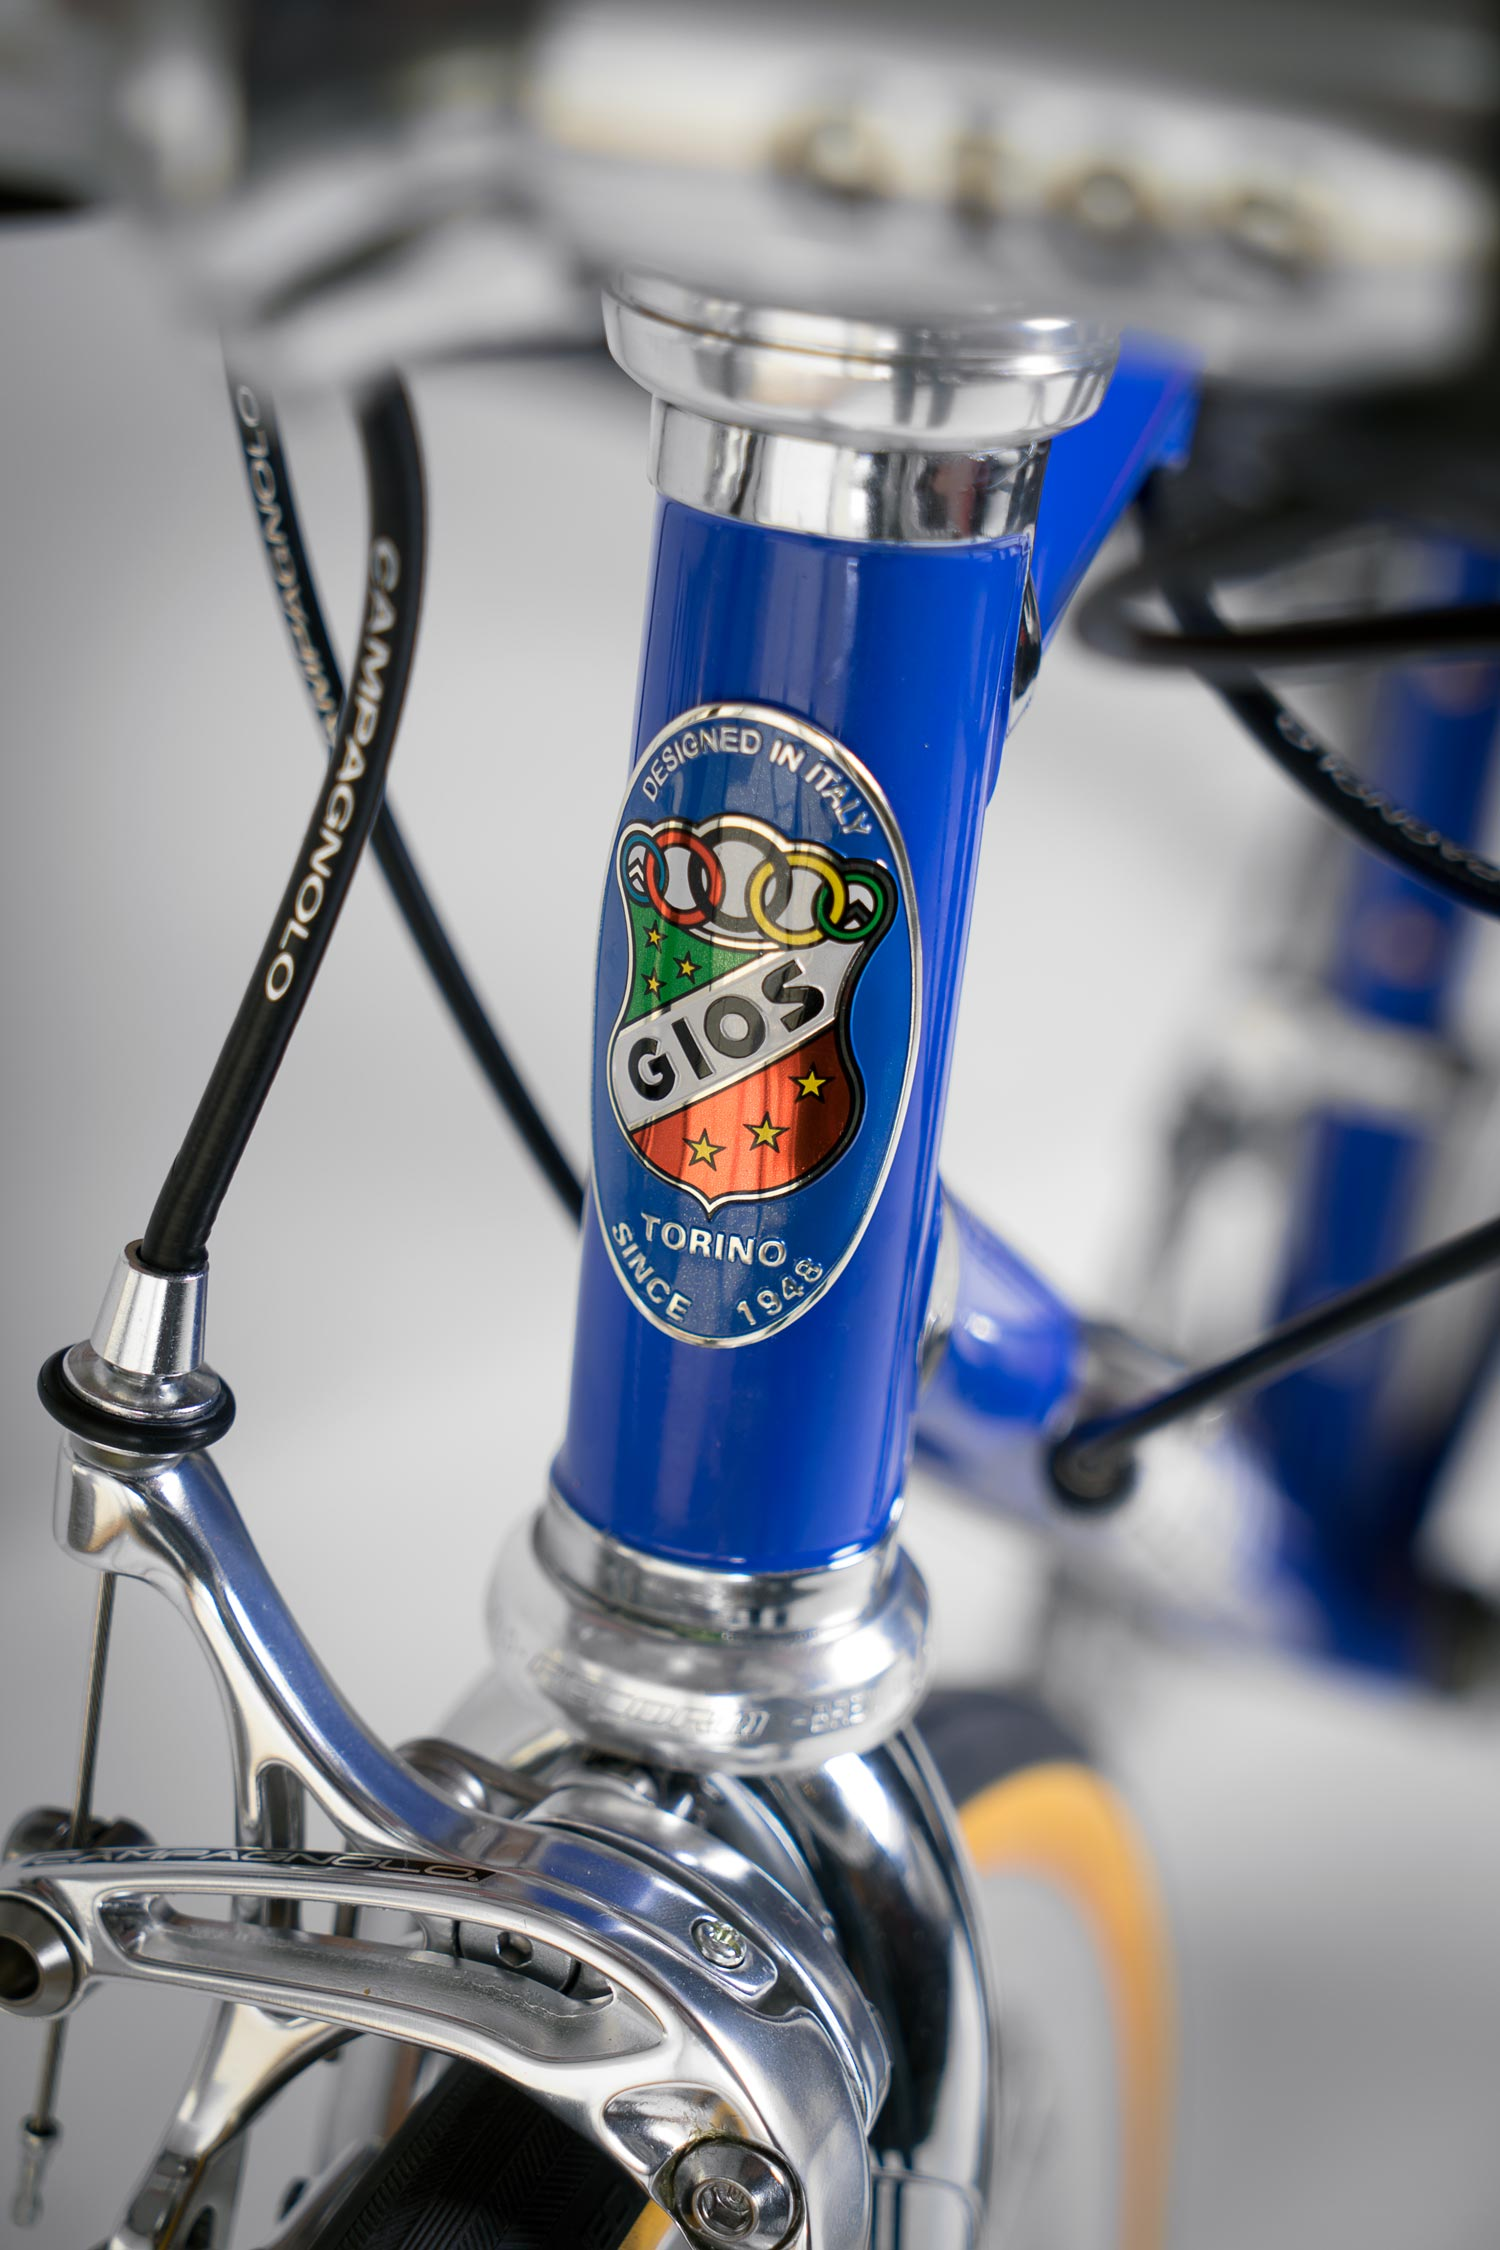 gios-compact-pro-detail-17